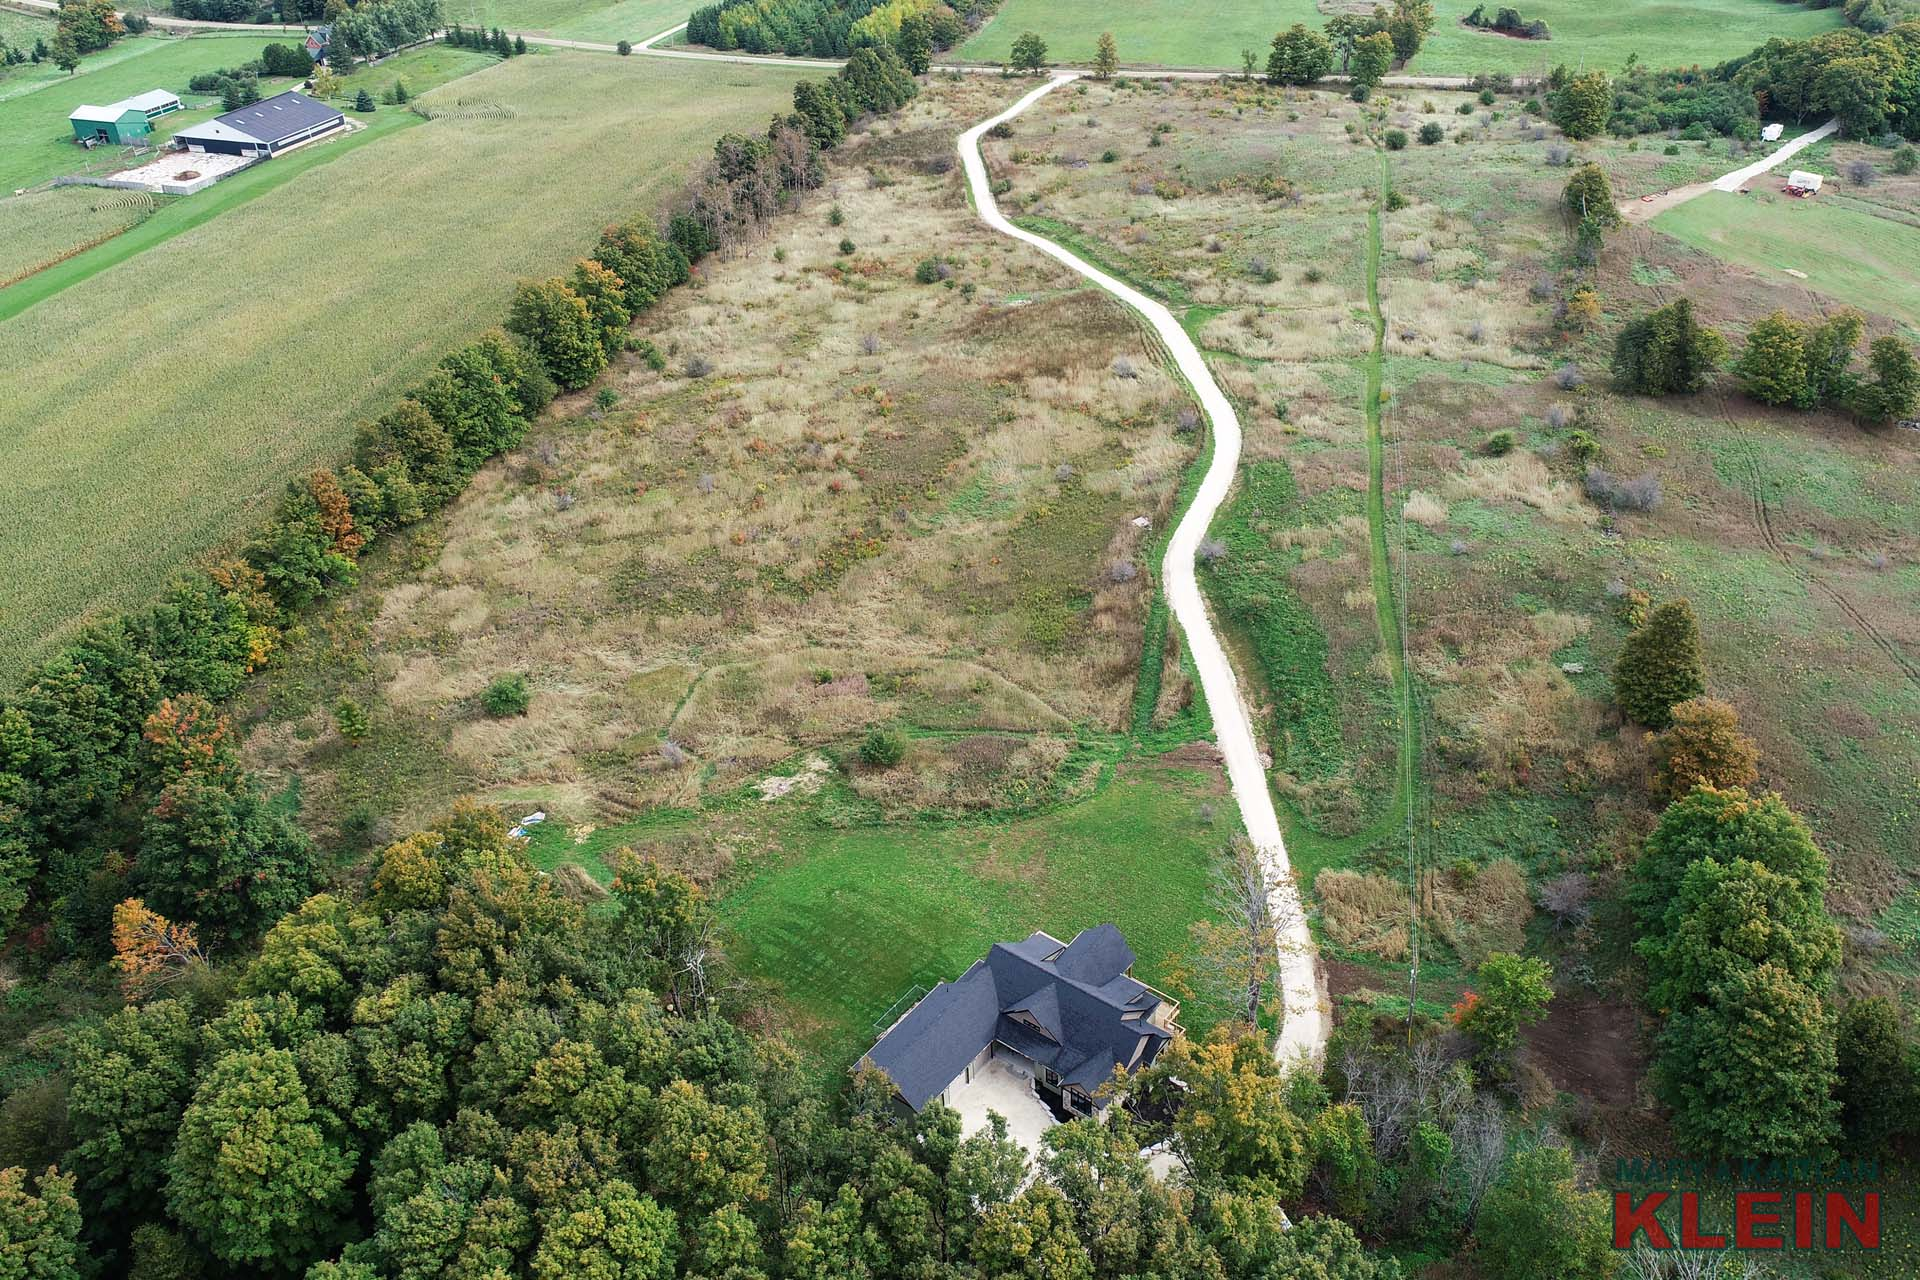 24 Acres, Home for Sale, Mulmur, Klein Team,